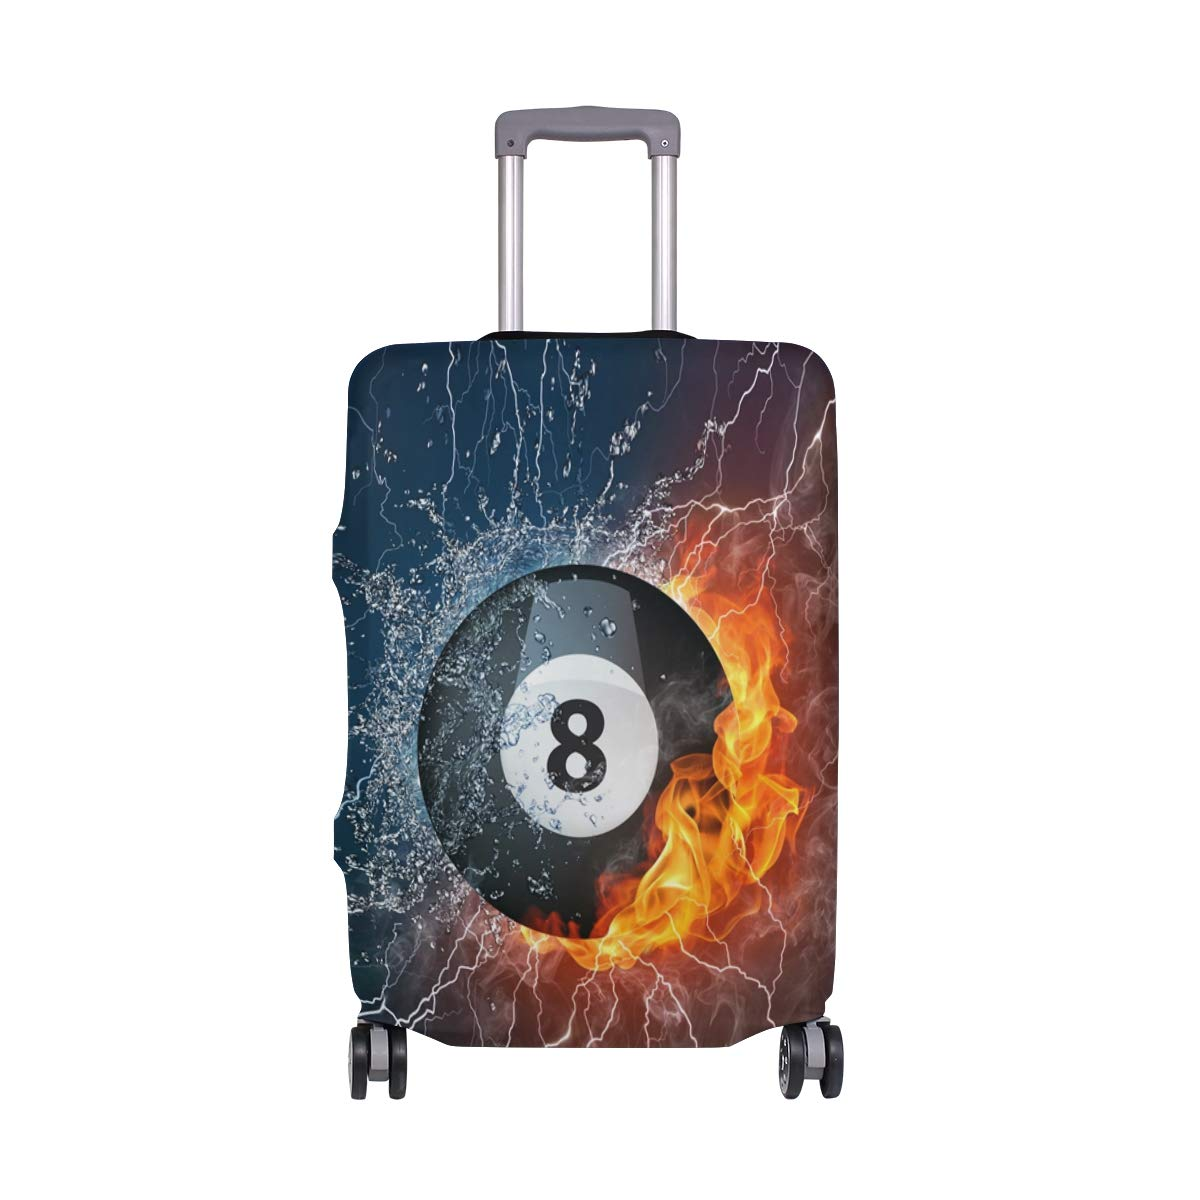 Travel Luggage Cover Spandex Suitcase Protector Washable Baggage Covers Colored Science Math Formula